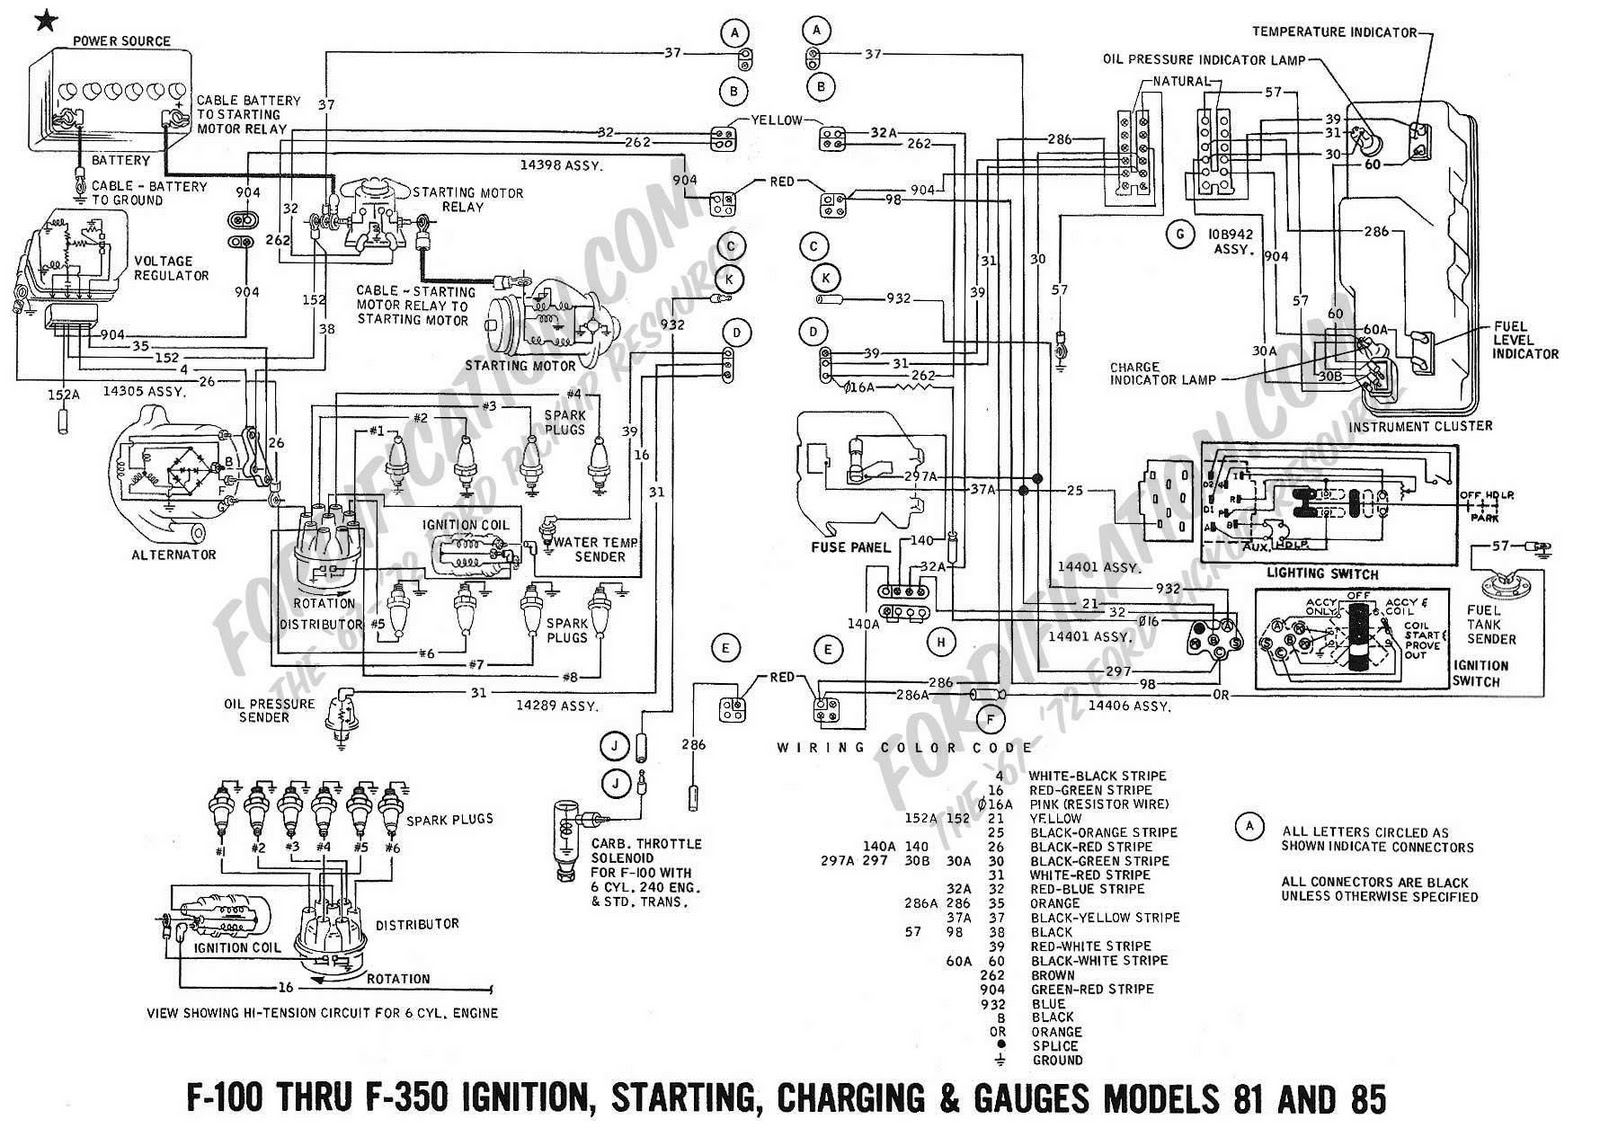 wiring diagram alternator 1969 ford bronco data wiring diagram1995 ford bronco alternator wiring wiring diagram library 1969 mustang alternator wiring diagram ford alternator wiring